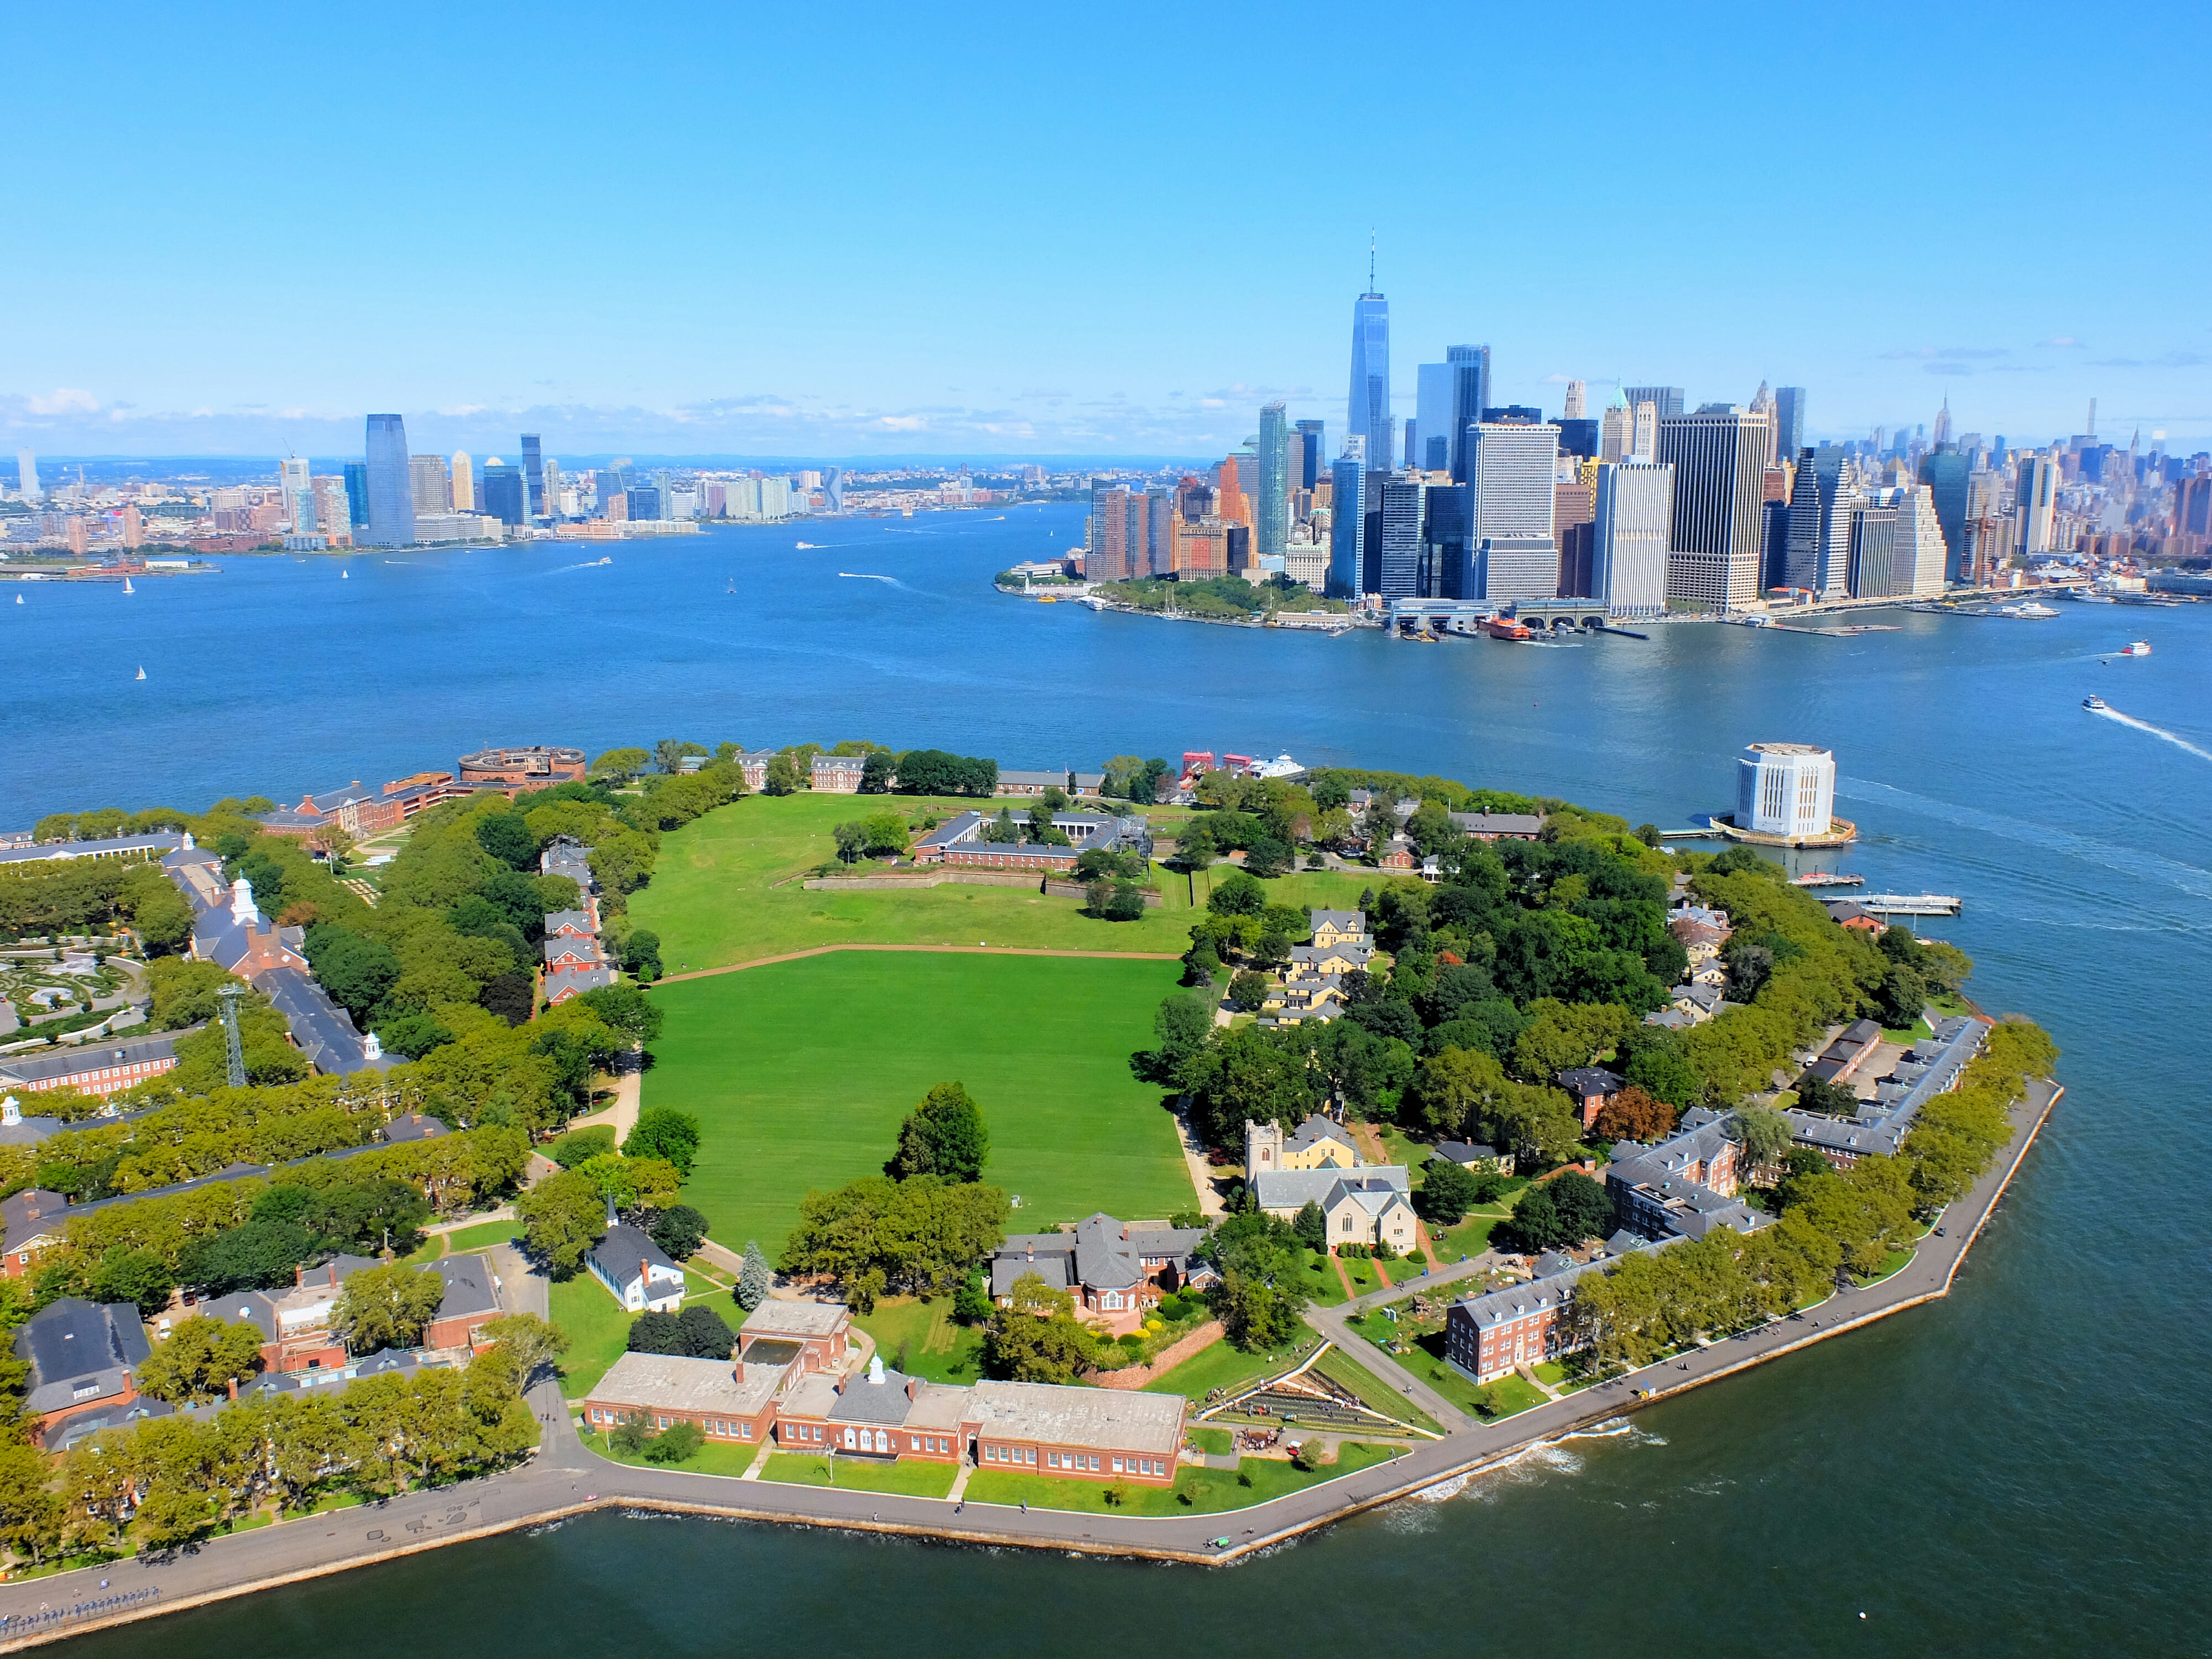 Helicopter Tour Govenors Island High Quality Wallpaper